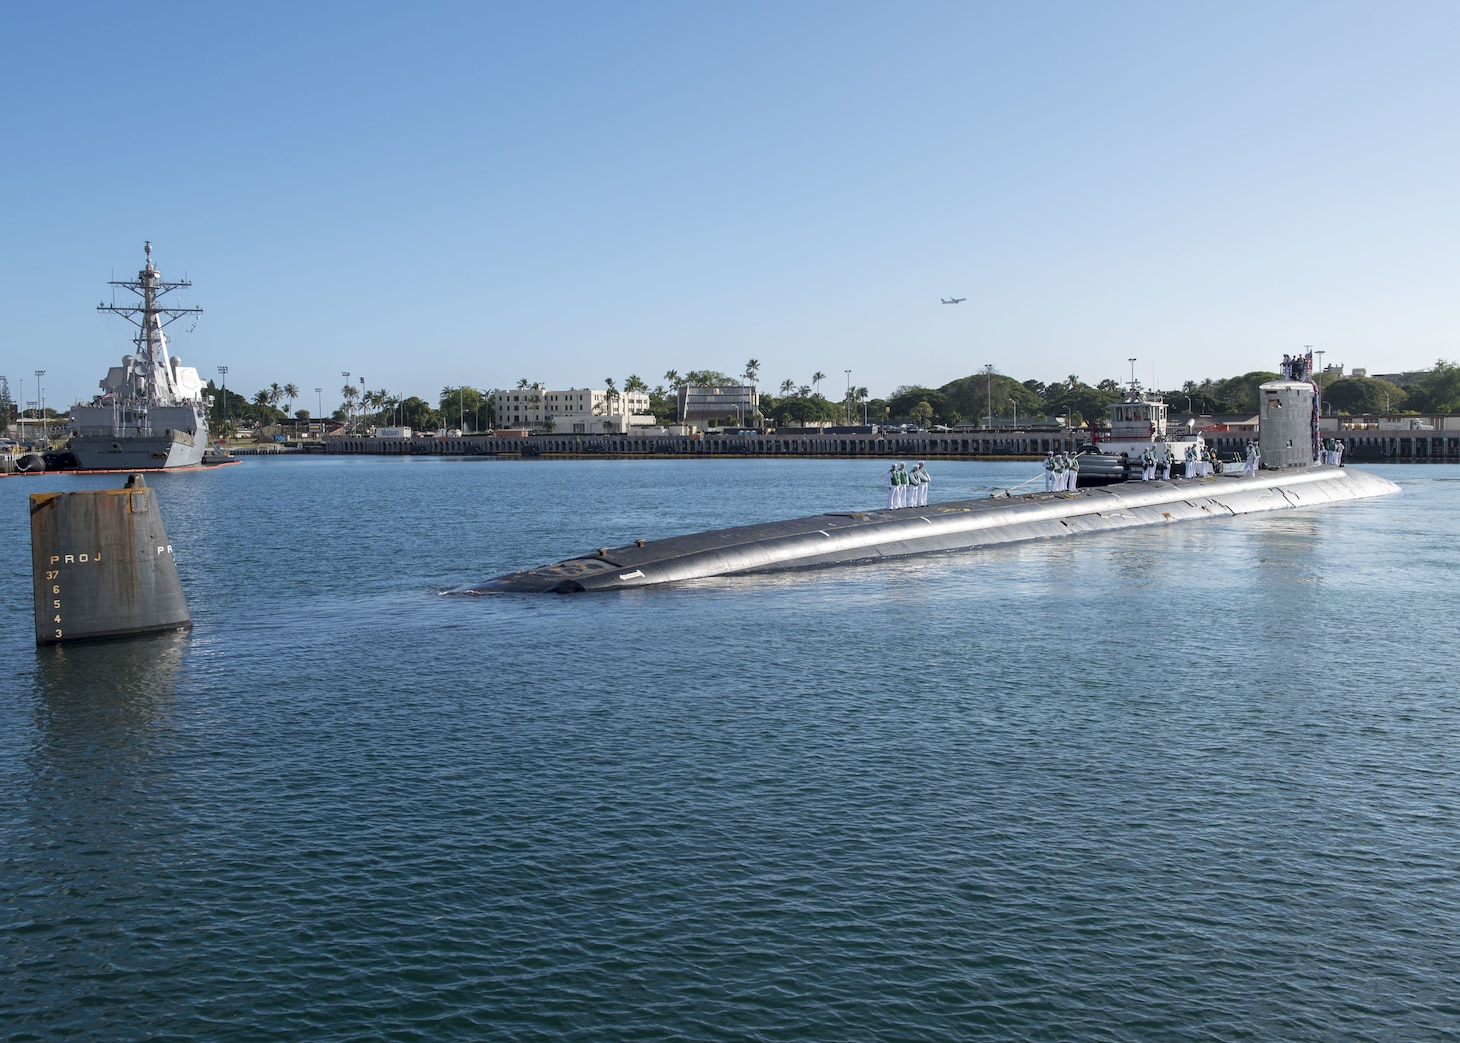 180126-N-KV911-0035 PEARL HARBOR (Jan. 26, 2018) Virginia-class fast-attack submarine USS Missouri (SSN 780) arrives at Joint Base Pearl Harbor-Hickam, after completing a change of homeport from Groton, Connecticut, Jan. 26. USS Missouri is the 6th Virginia-class submarine homeported in Pearl Harbor. (U.S. Navy Photo by Mass Communication Specialist 2nd Class Shaun Griffin/Released)